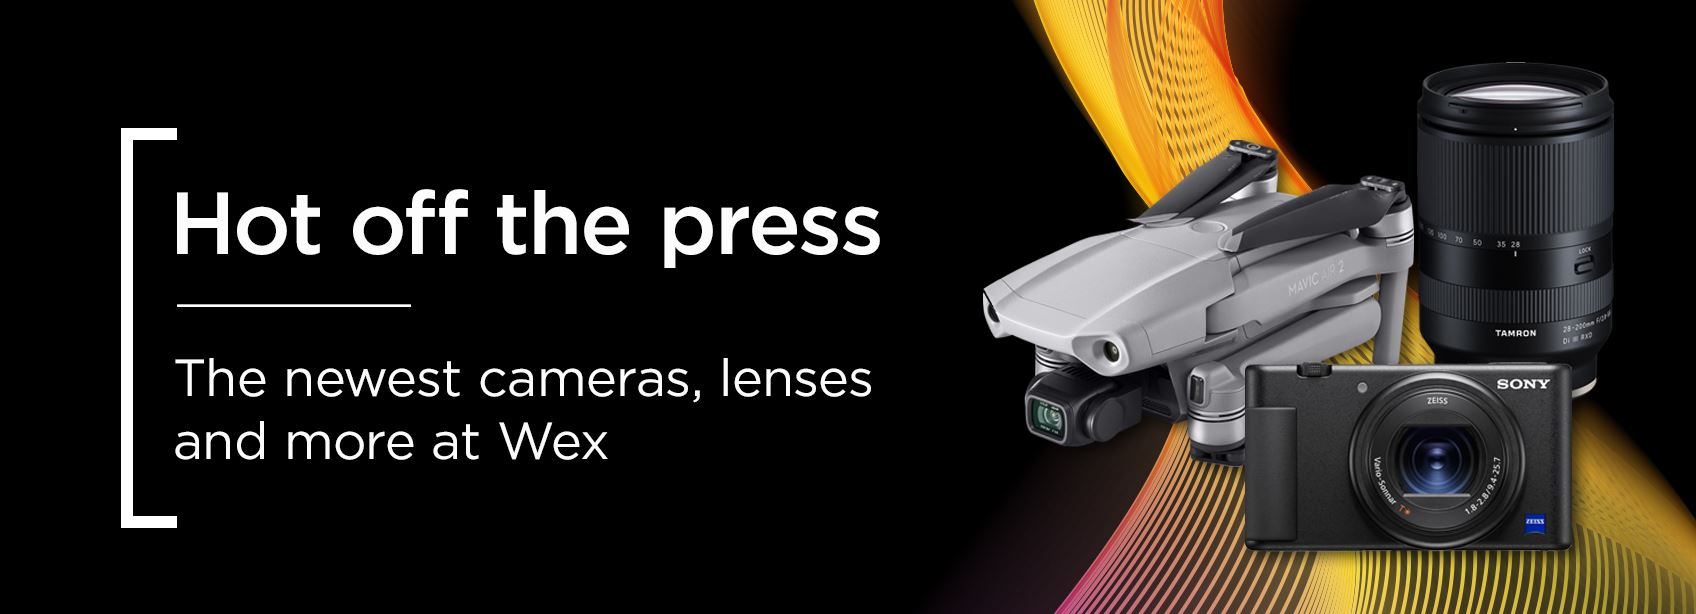 Hot off the press - The newest camerasm lenses and more at Wex